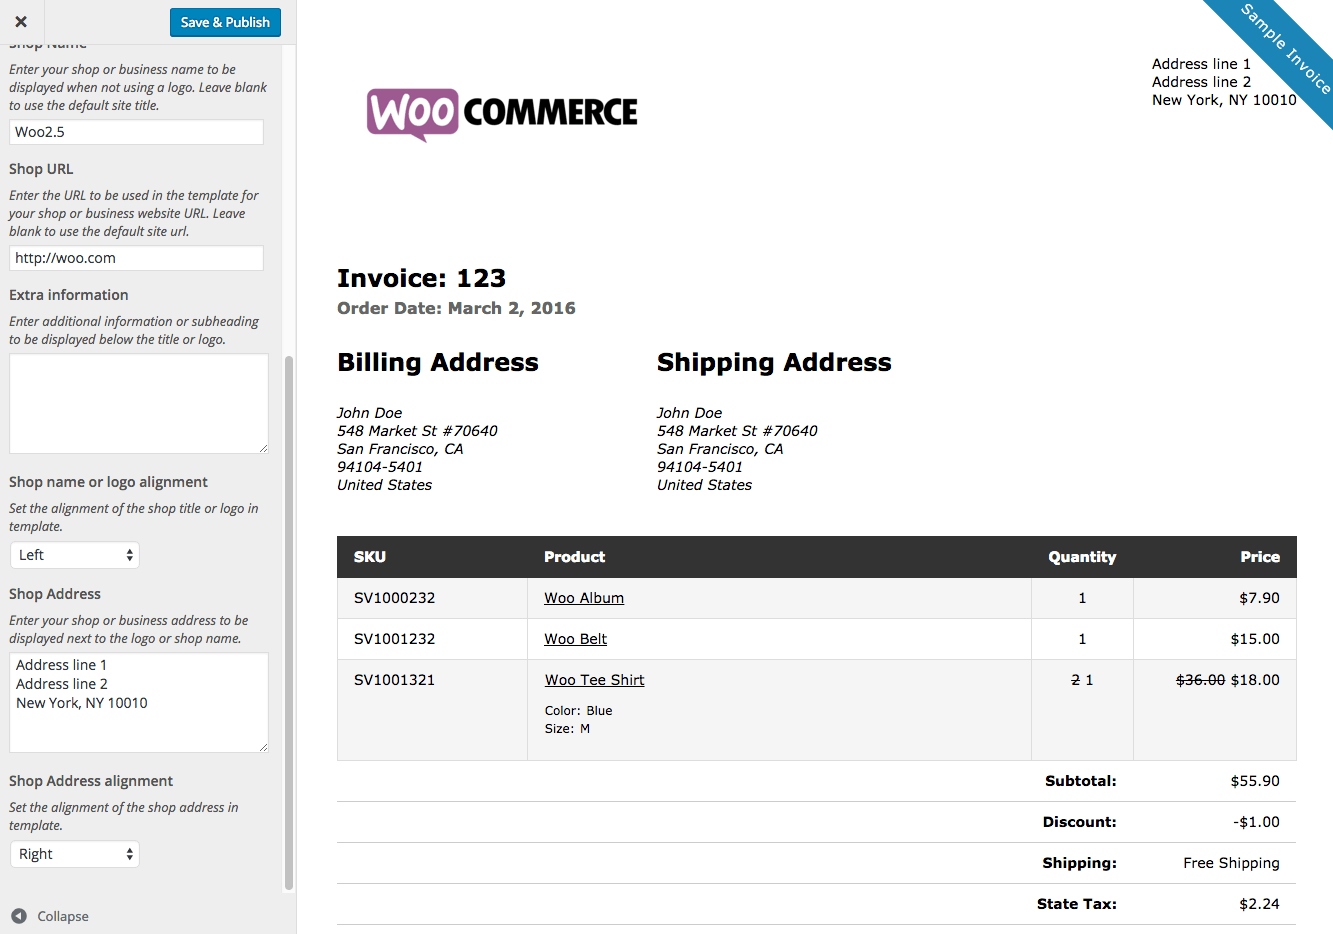 Totallocalus  Nice Woocommerce Print Invoices Amp Packing Lists  Woocommerce Docs With Excellent Woocommerce Print Invoices  Packing Lists Customizer With Amazing Whats A Proforma Invoice Also How To Invoice A Company For Freelance Work In Addition Empty Invoice Template And Airbnb Invoice As Well As Download An Invoice Template Additionally How To Make A Commercial Invoice From Docswoocommercecom With Totallocalus  Excellent Woocommerce Print Invoices Amp Packing Lists  Woocommerce Docs With Amazing Woocommerce Print Invoices  Packing Lists Customizer And Nice Whats A Proforma Invoice Also How To Invoice A Company For Freelance Work In Addition Empty Invoice Template From Docswoocommercecom